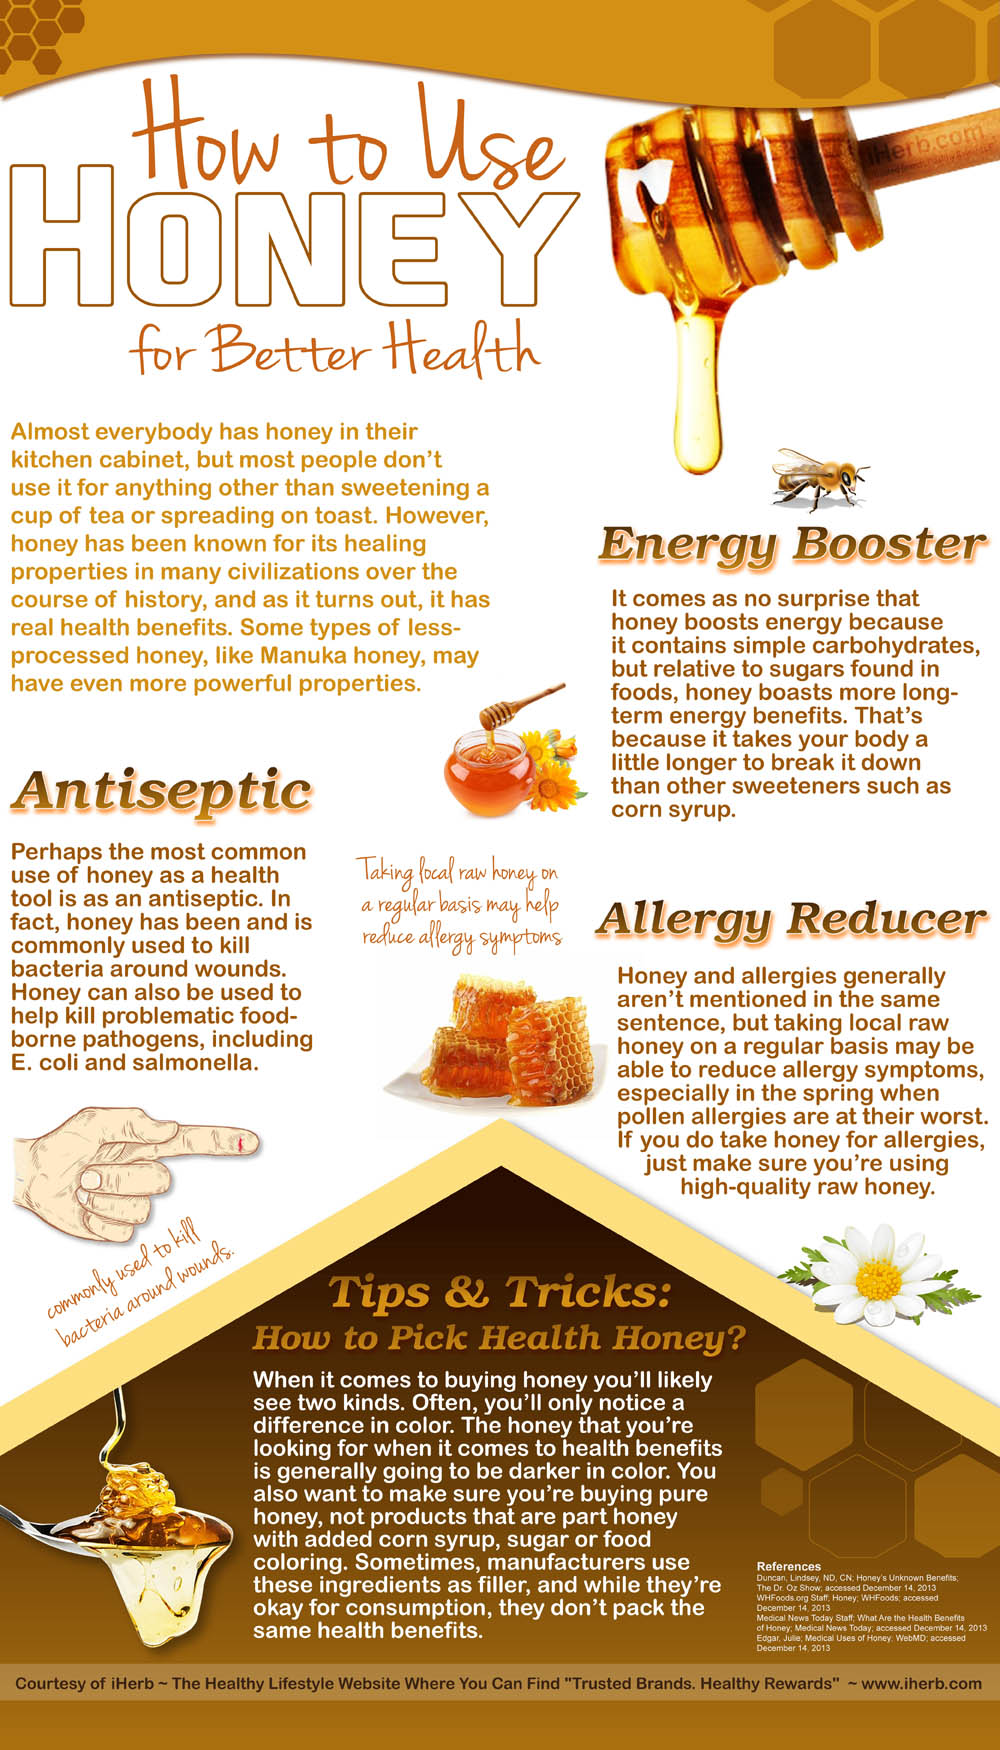 How to Use Honey for Better Health